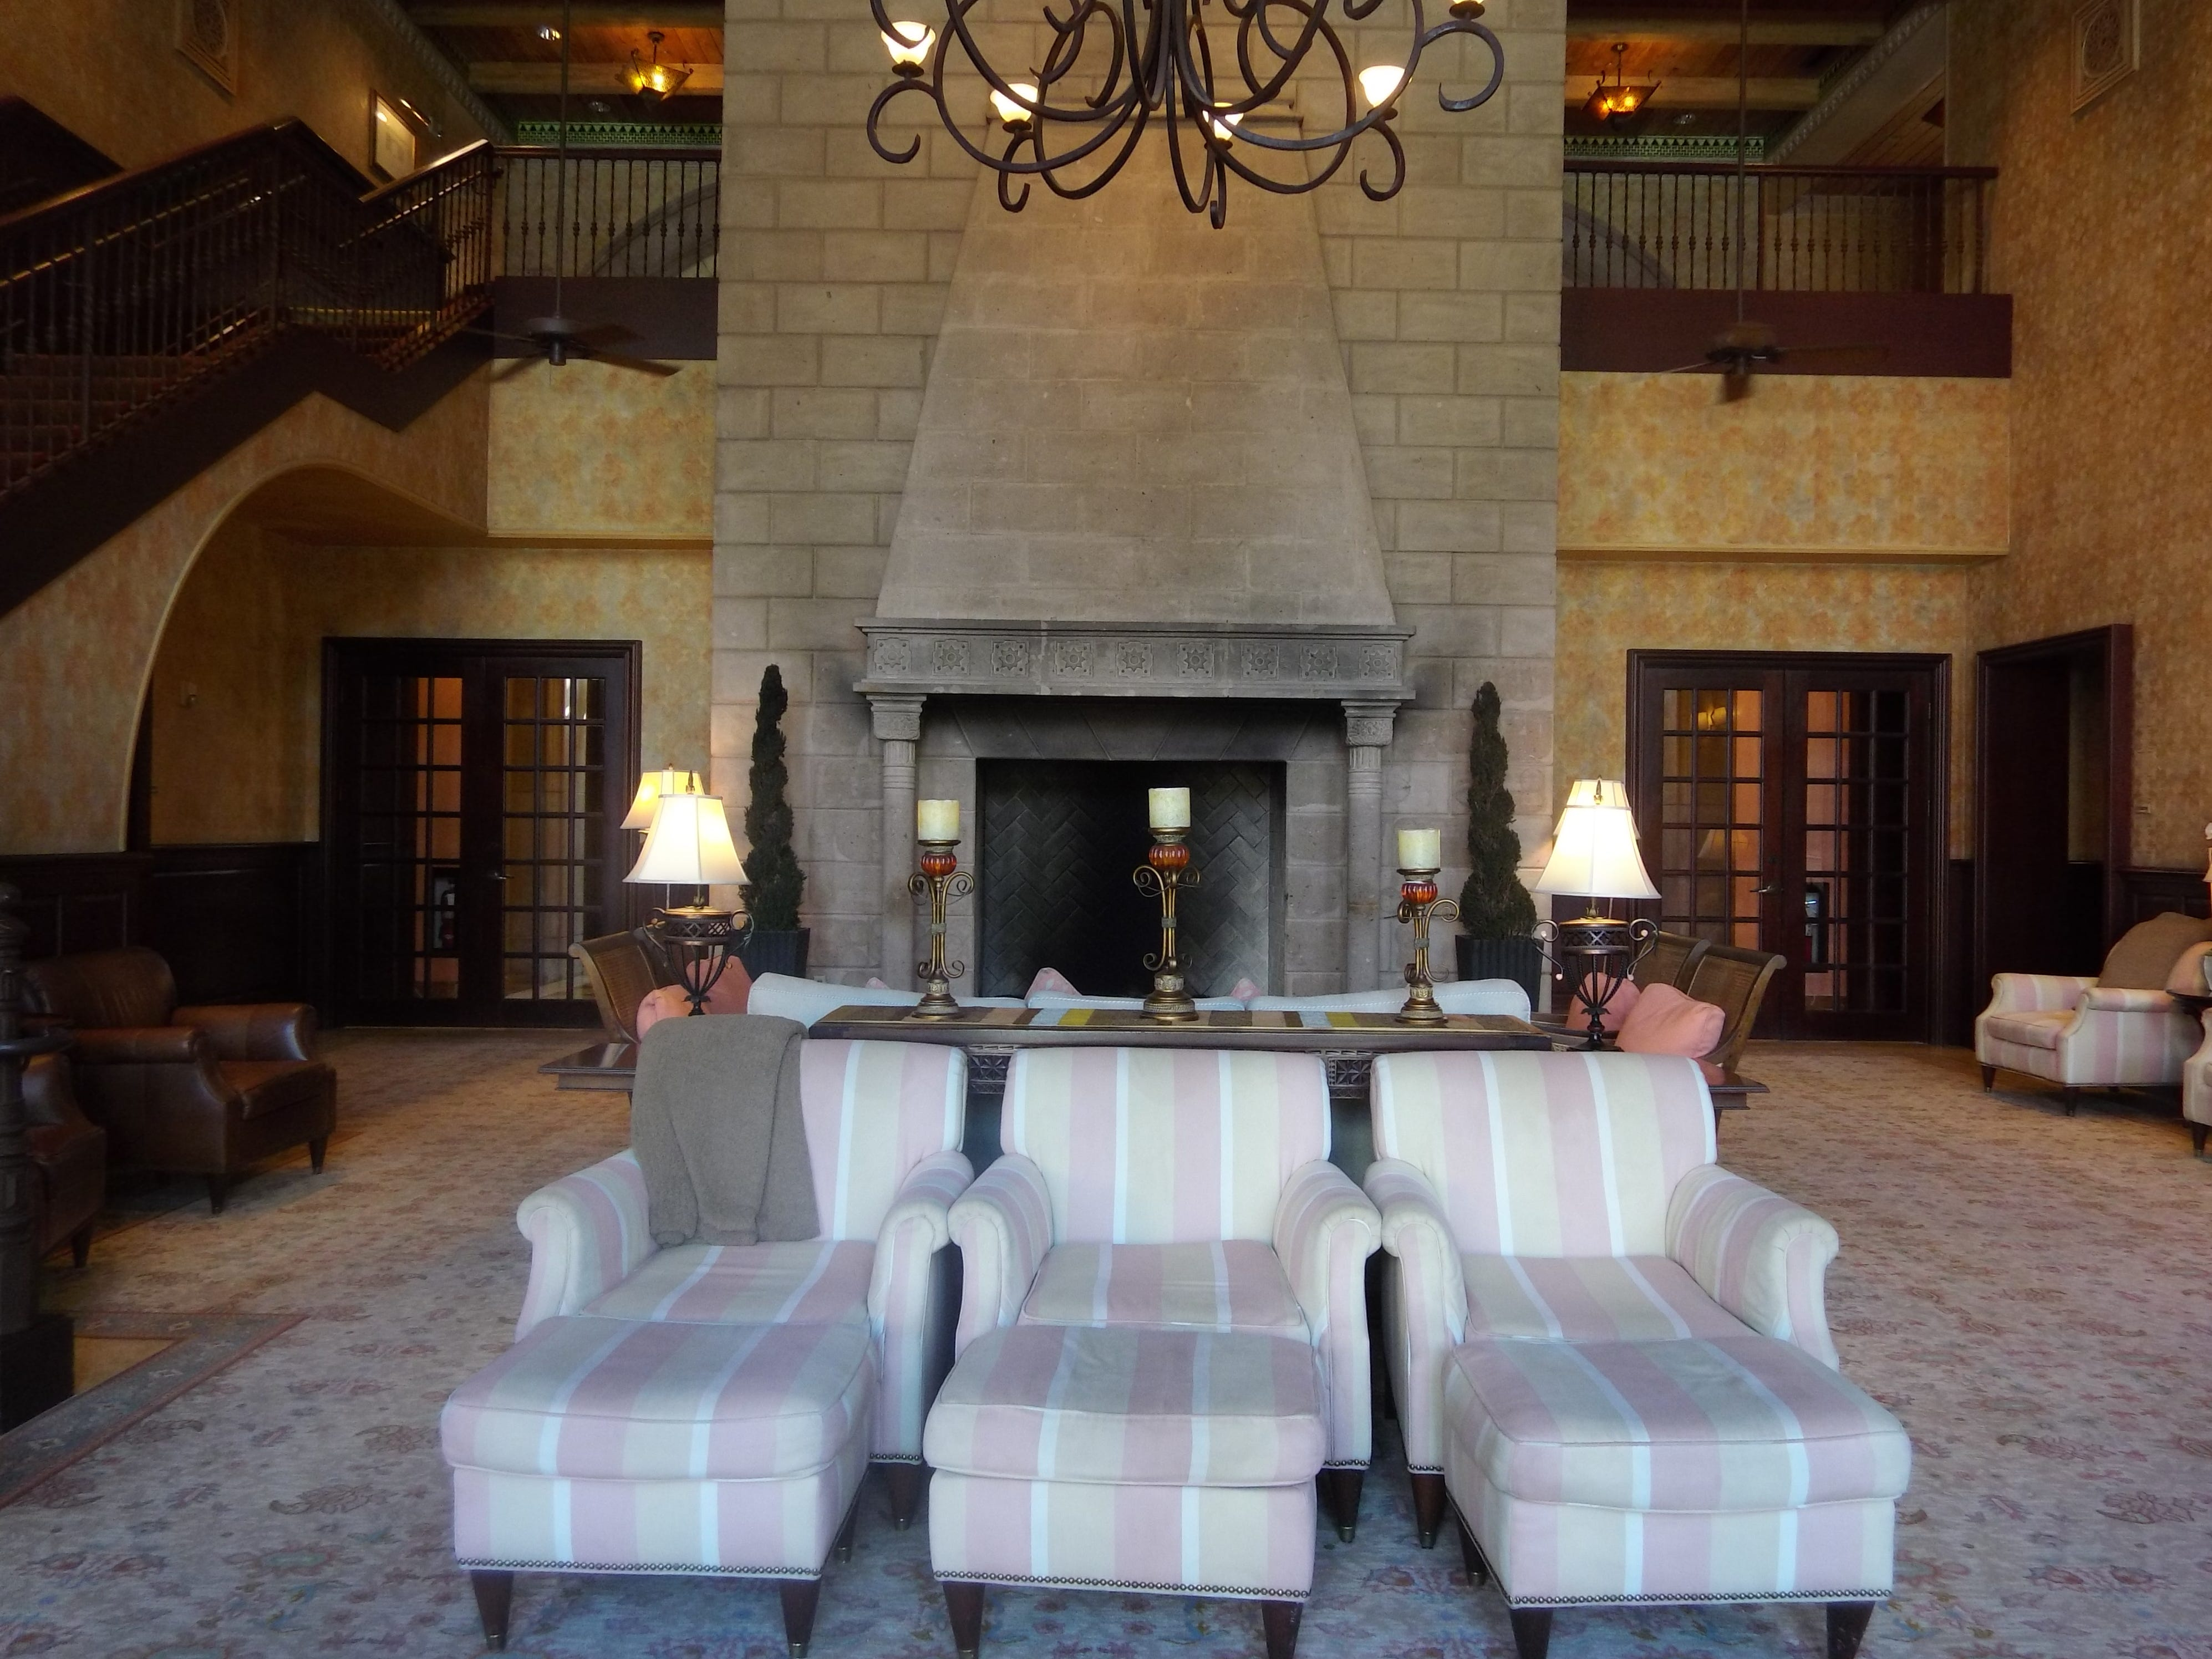 Guests of the Waldorf Astoria Spa enjoy their time in this relaxing lounge.